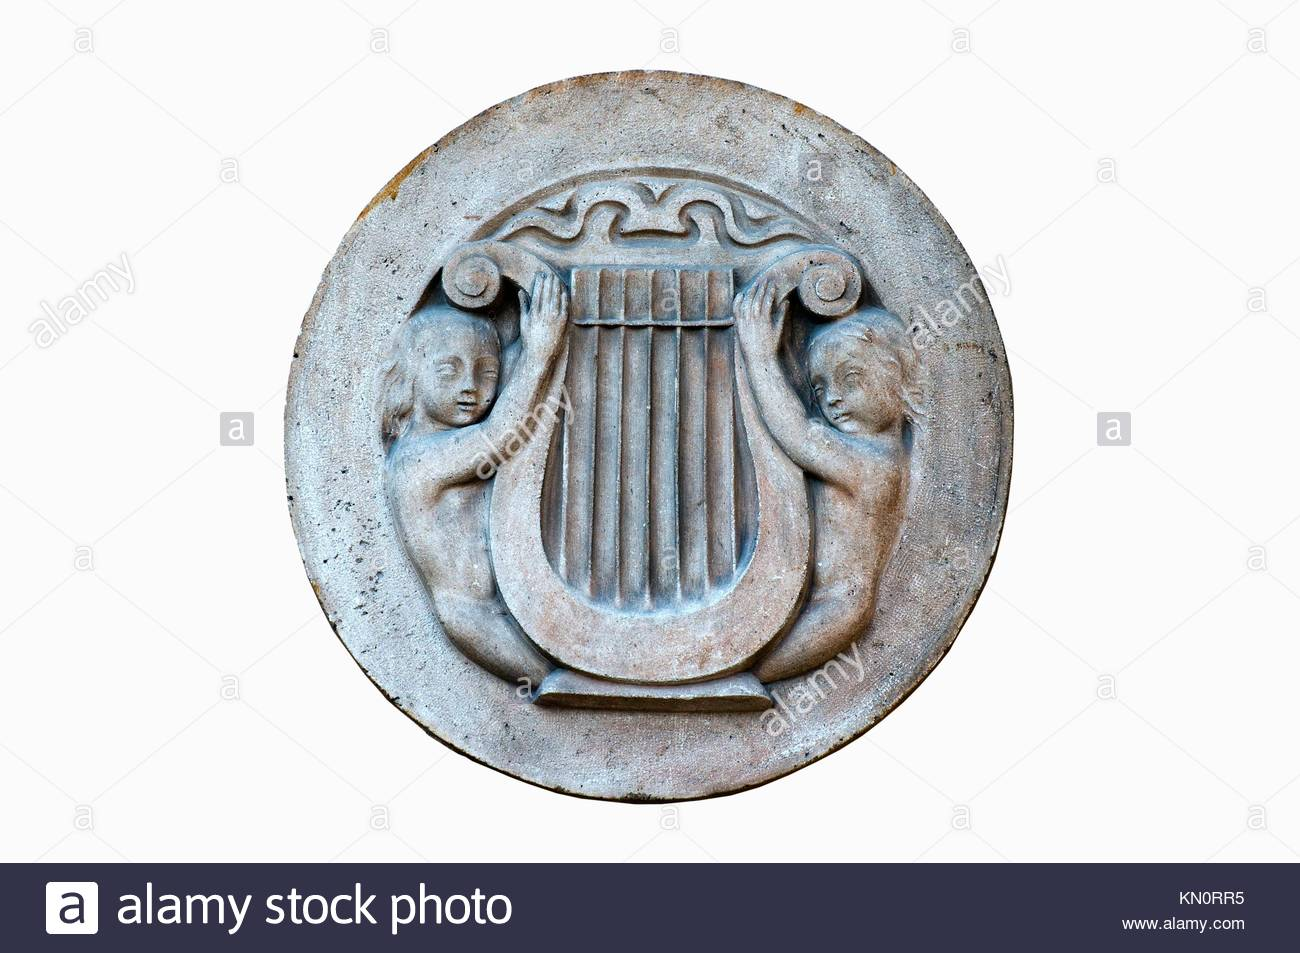 Round carving depicting two figures holding a lyre - Stock Image